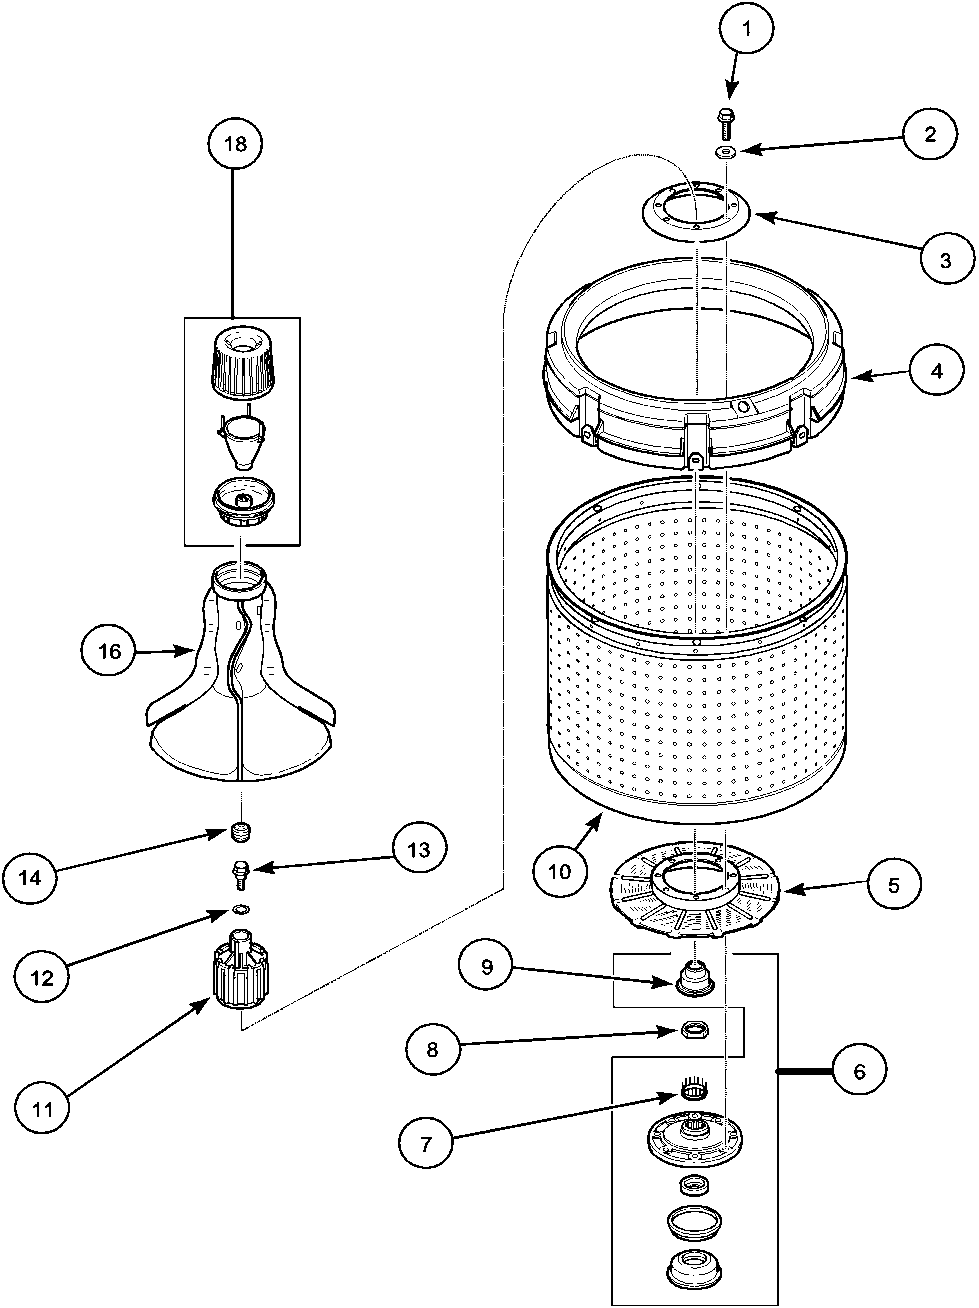 hight resolution of lwa40aw2 top loading washer agitator drive bell and wash tub parts diagram